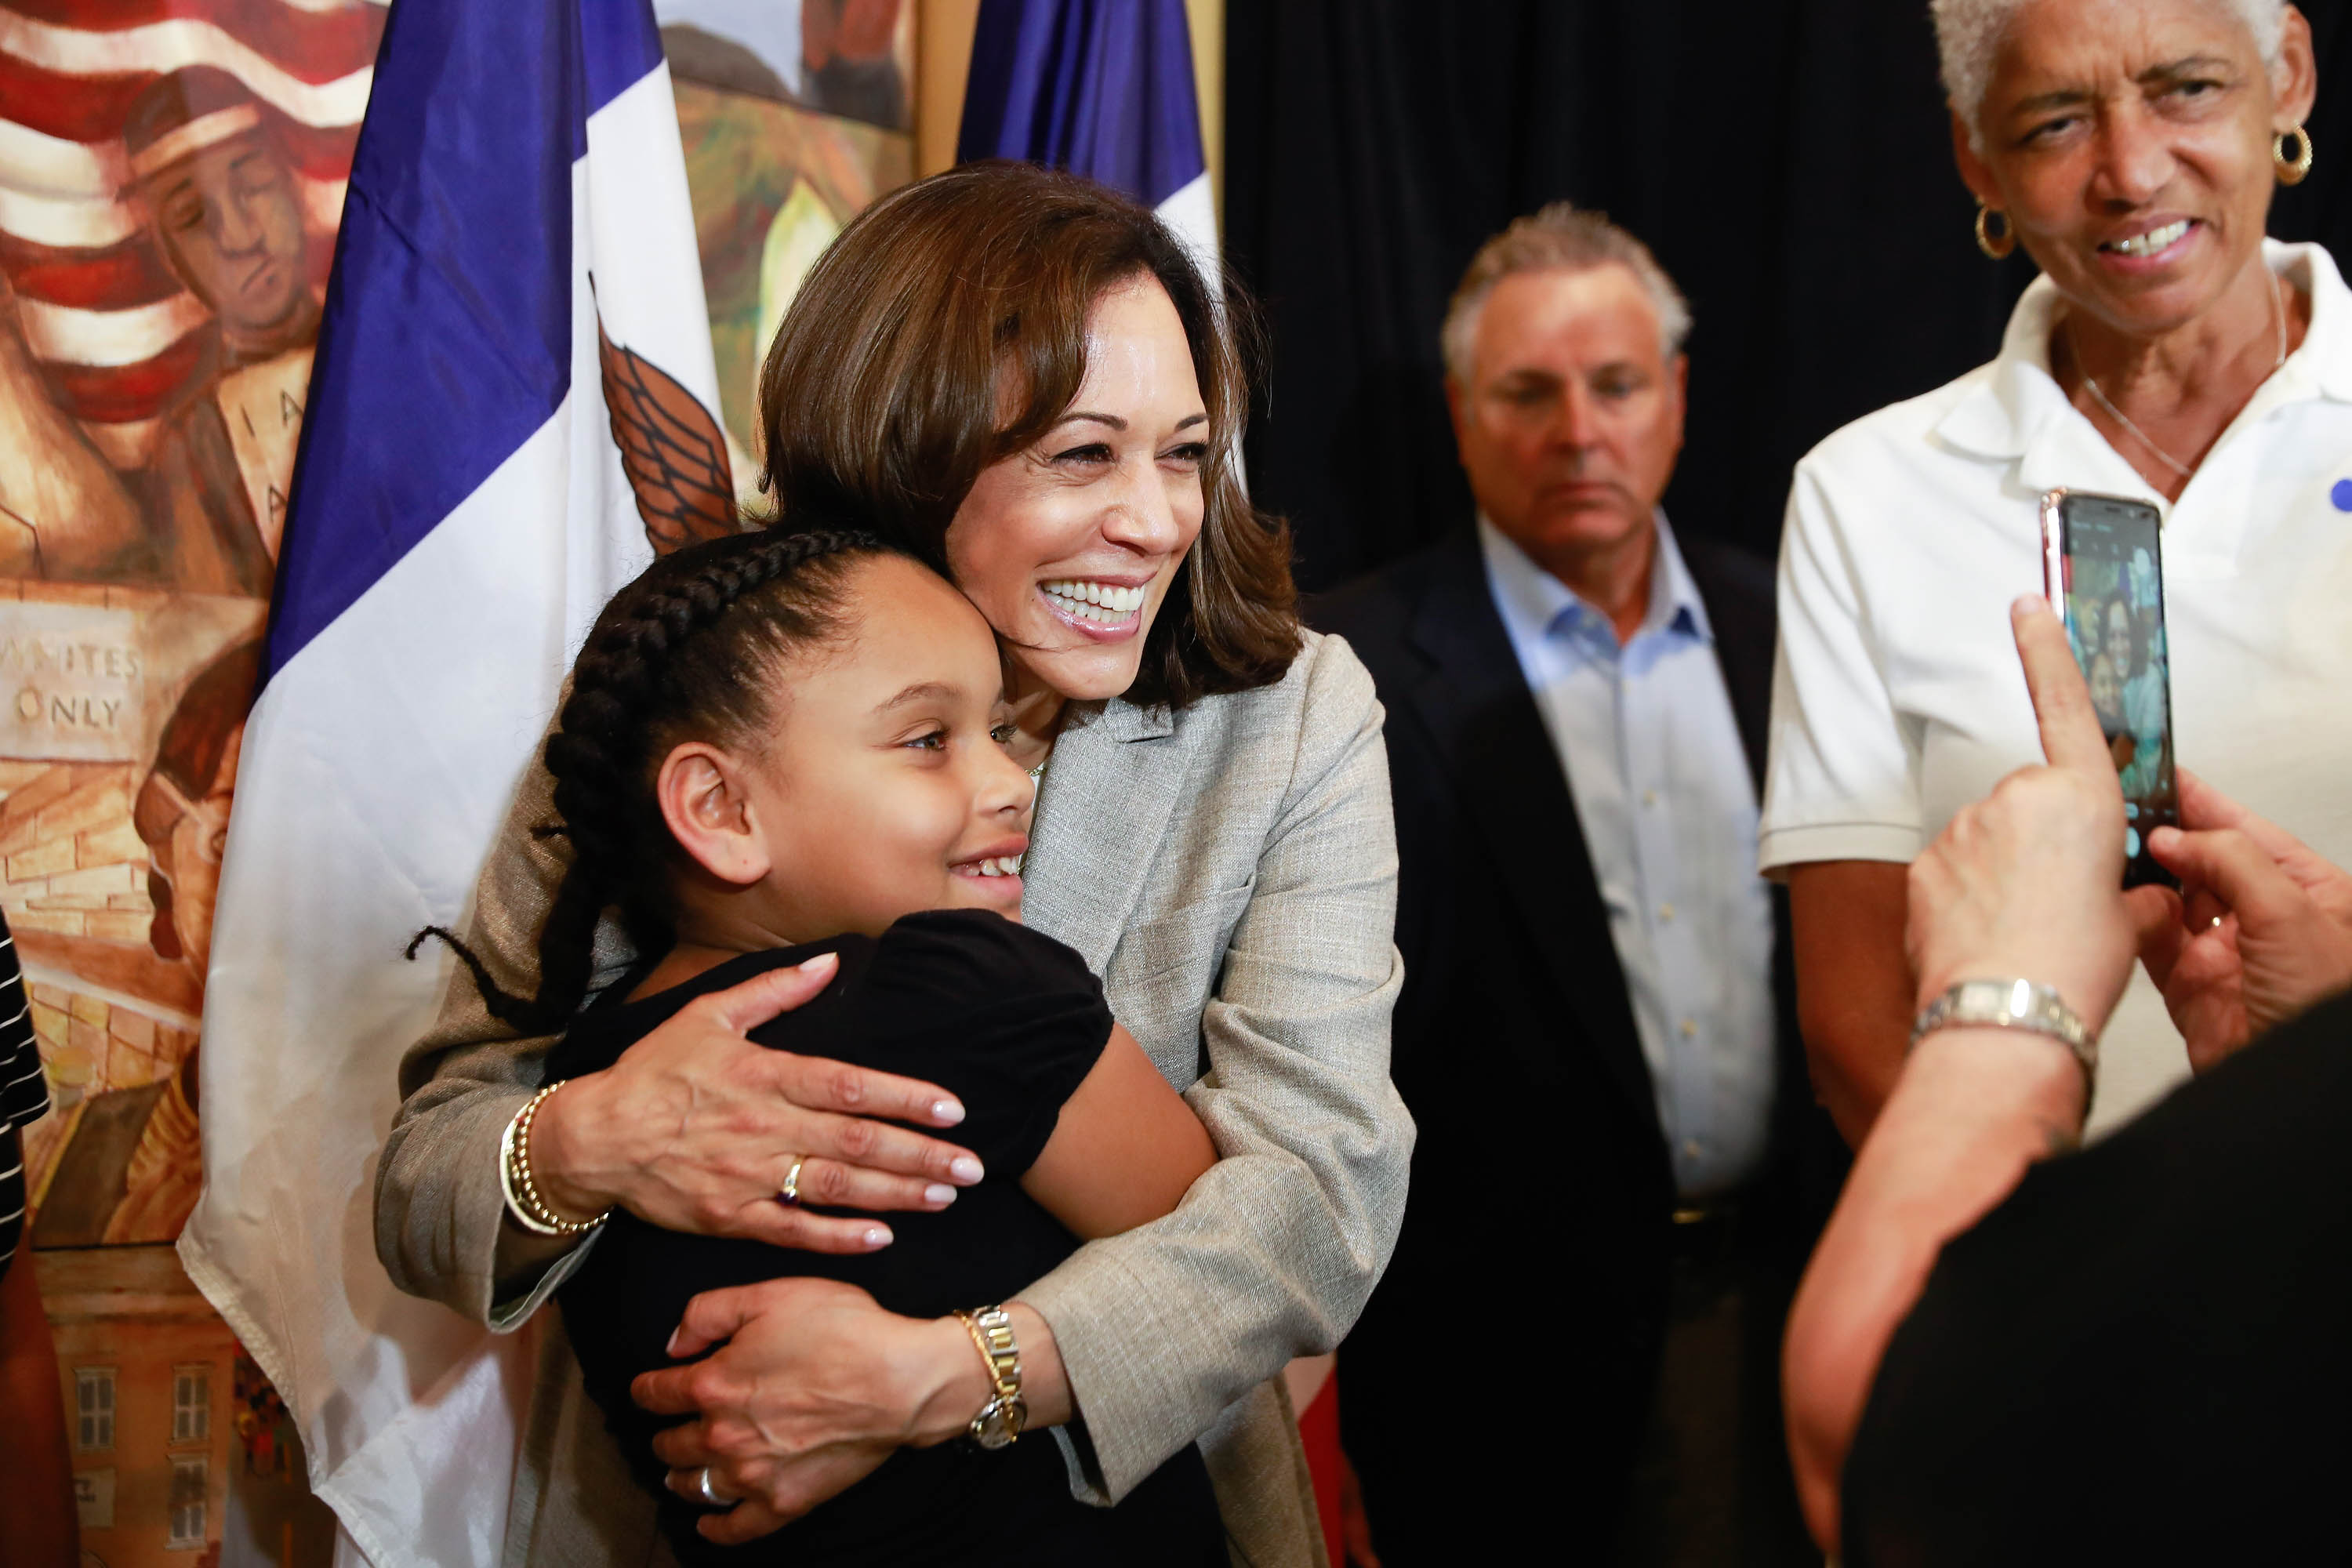 United States Senator from California Kamala Harris hugs